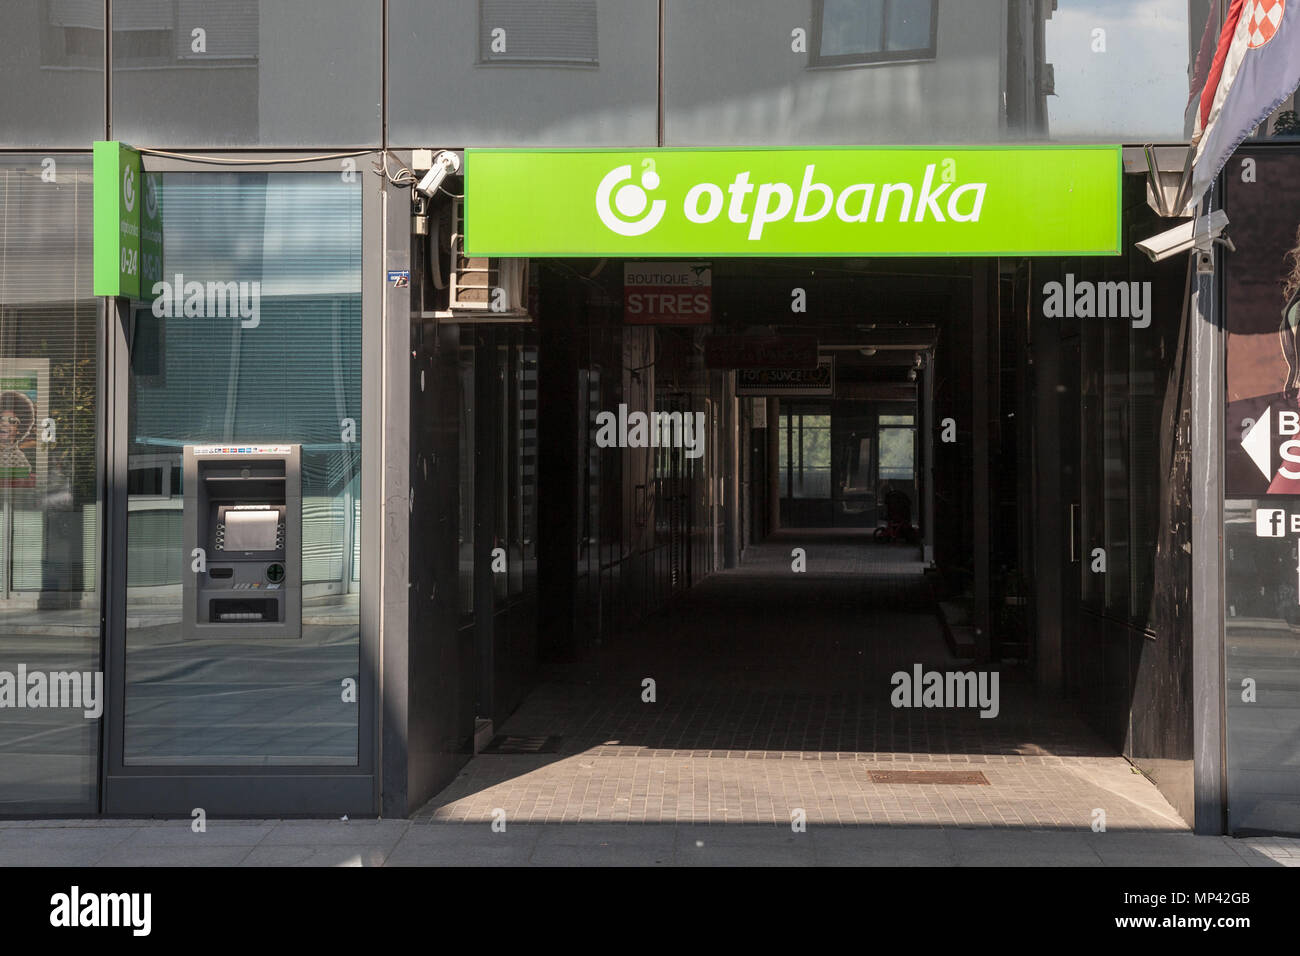 VUKOVAR, CROATIA - MAY 12, 2018: OTP Bank (OTP Banka) logo on their main office for Vukovar. OTP Bank Group is one of the largest Hungarian banks, spr Stock Photo